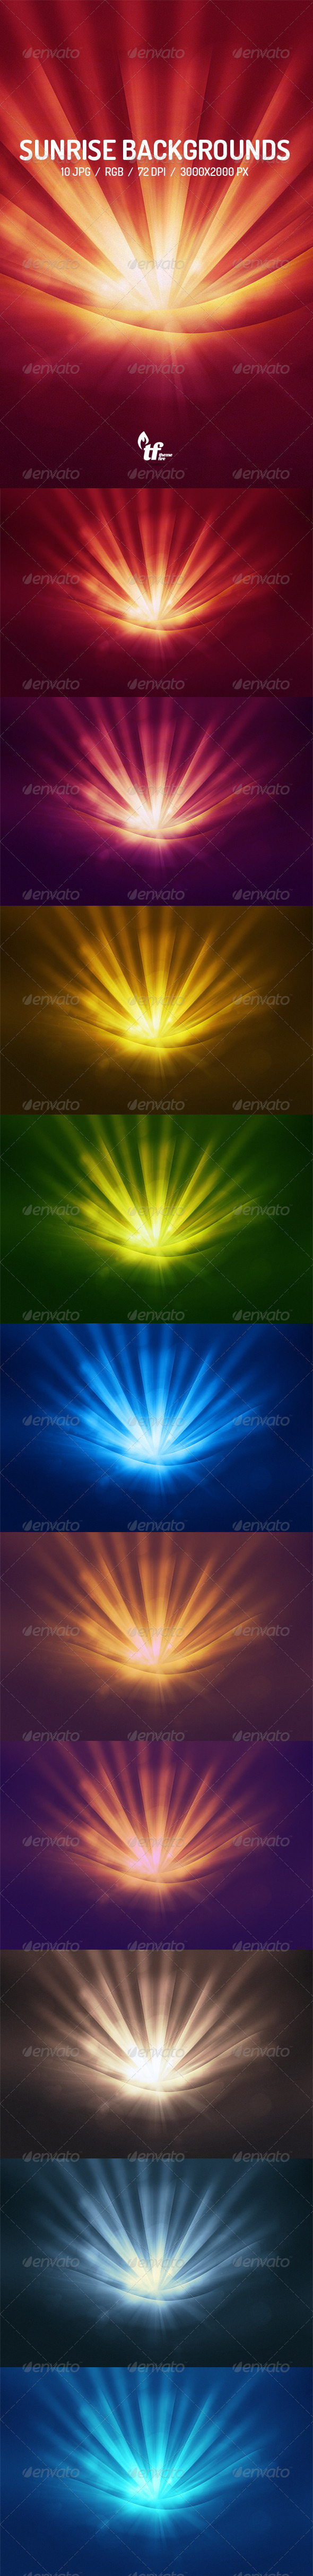 GraphicRiver Sunrise Backgrounds 7614878